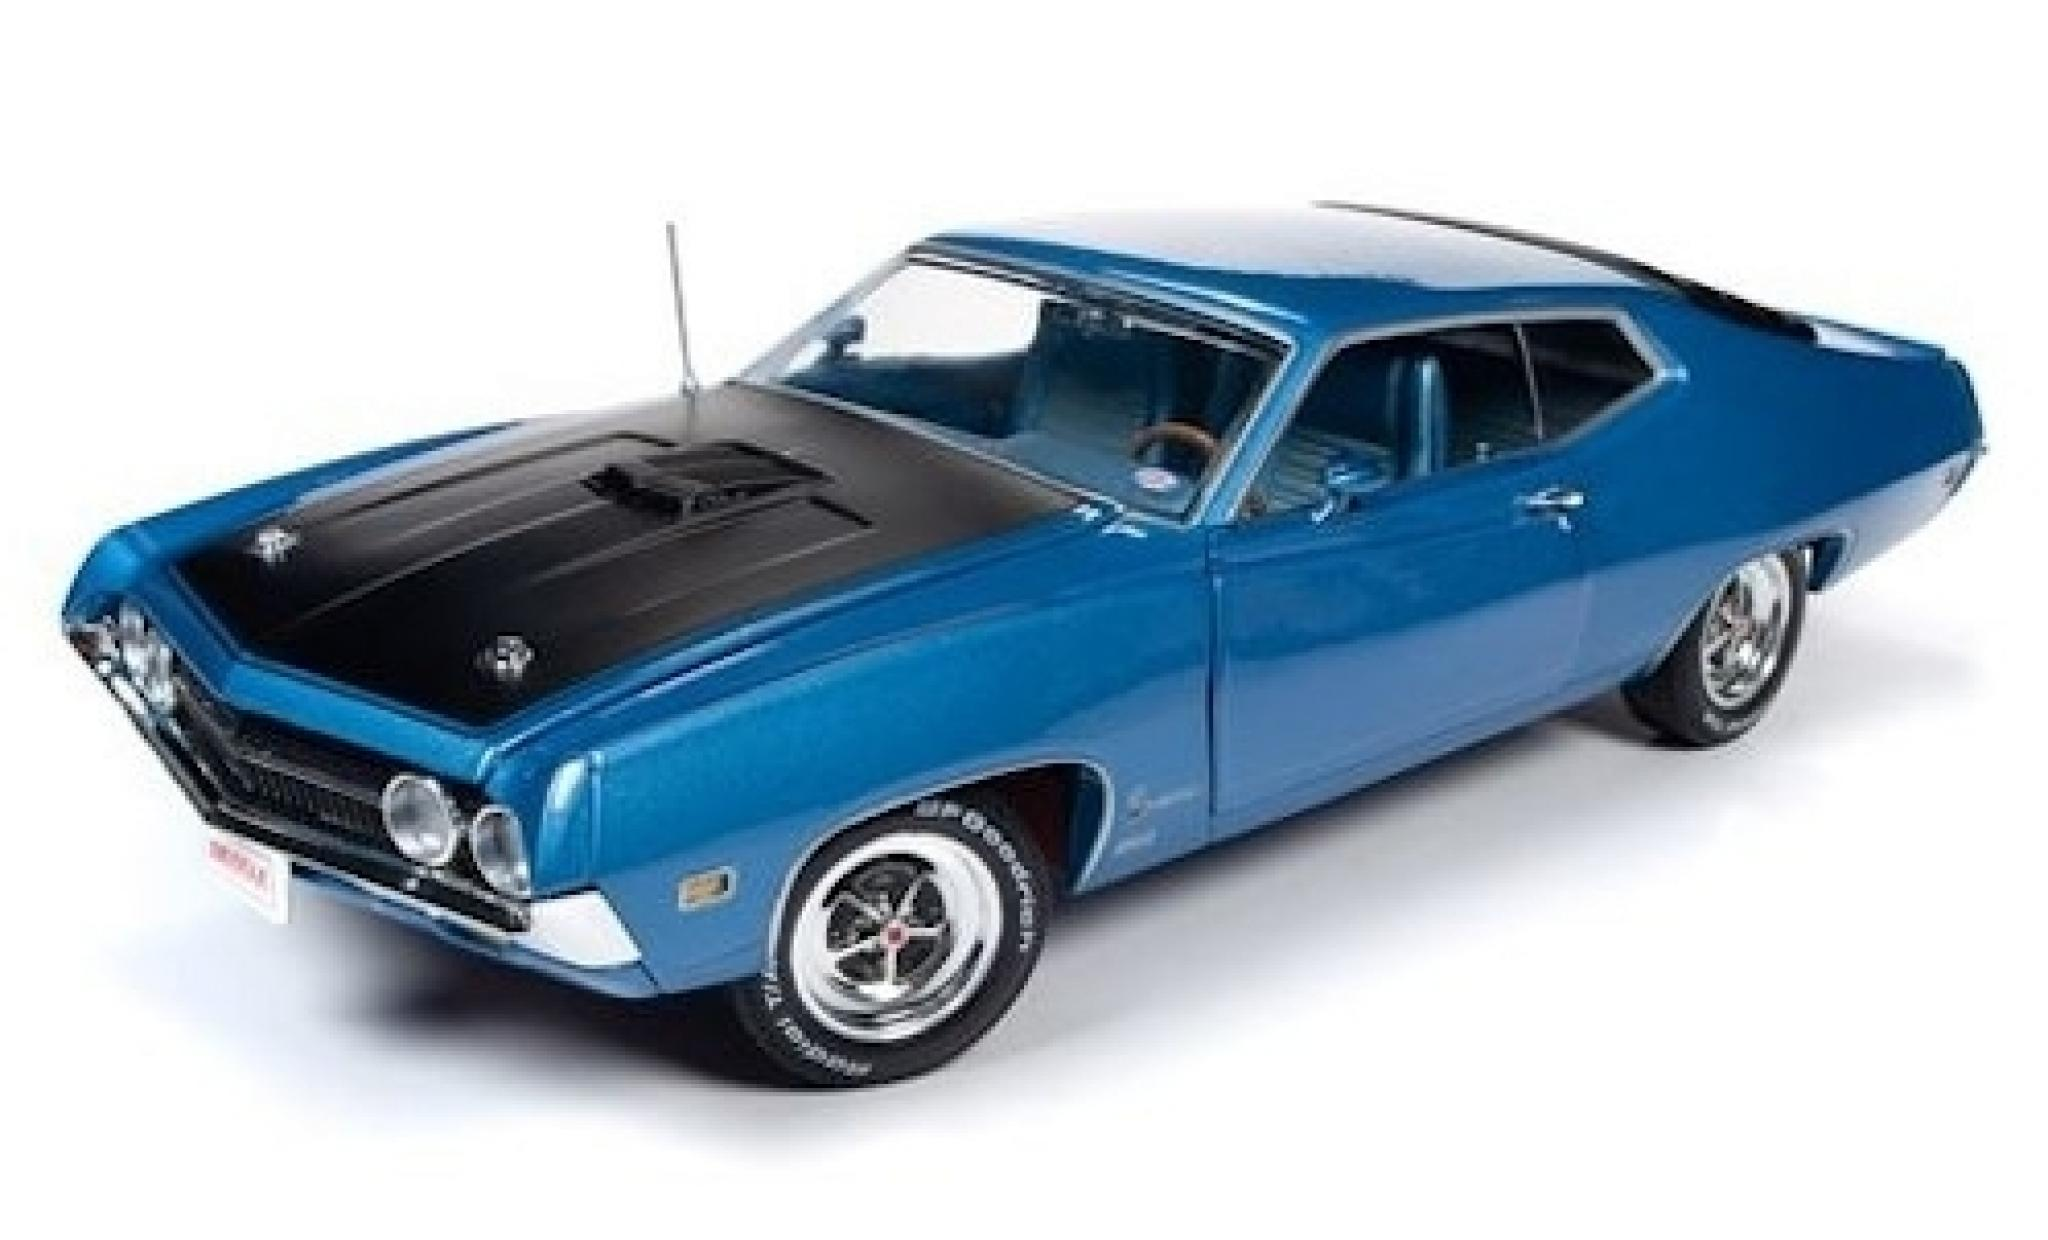 Ford Torino 1/18 Auto World Cobra metallise bleue/noire 1970